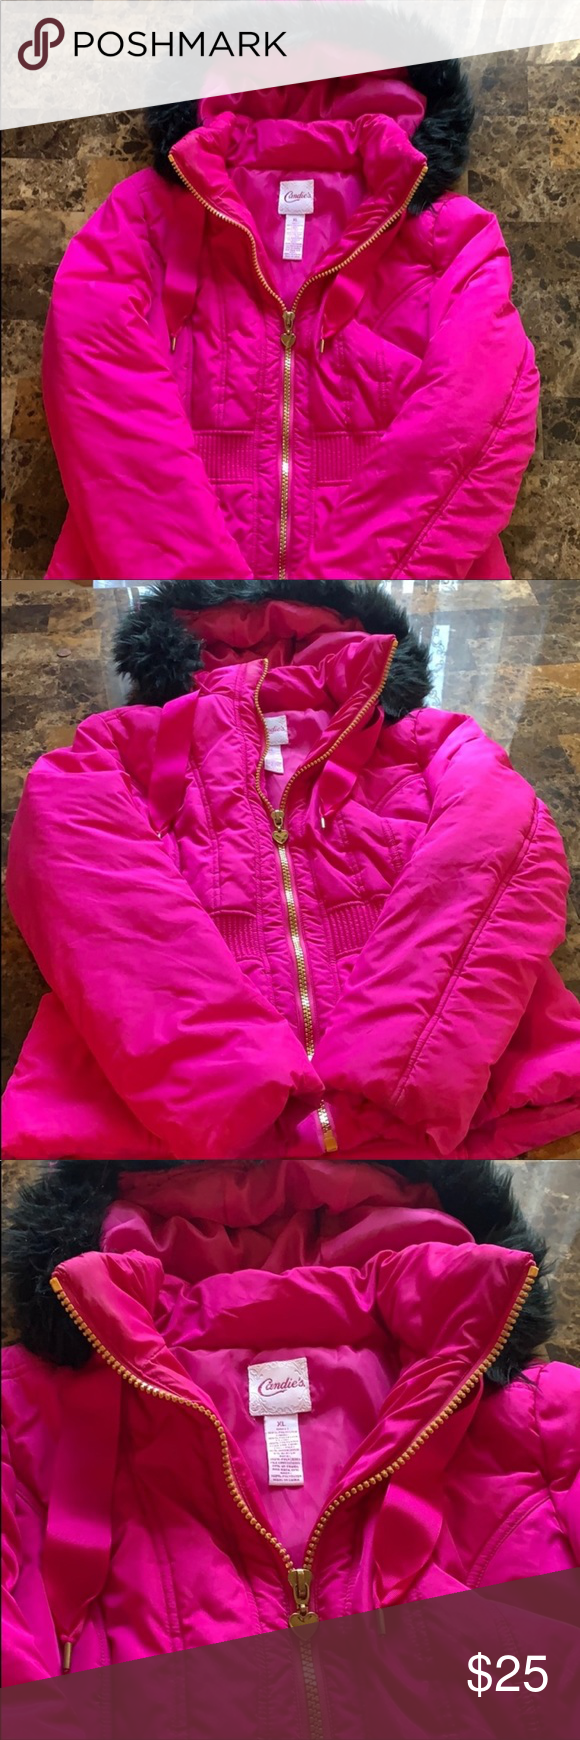 Photo of Candie's Hot Pink Winter Jacket, Juniors Size XL Candie's Hot Pink Winter Ja…